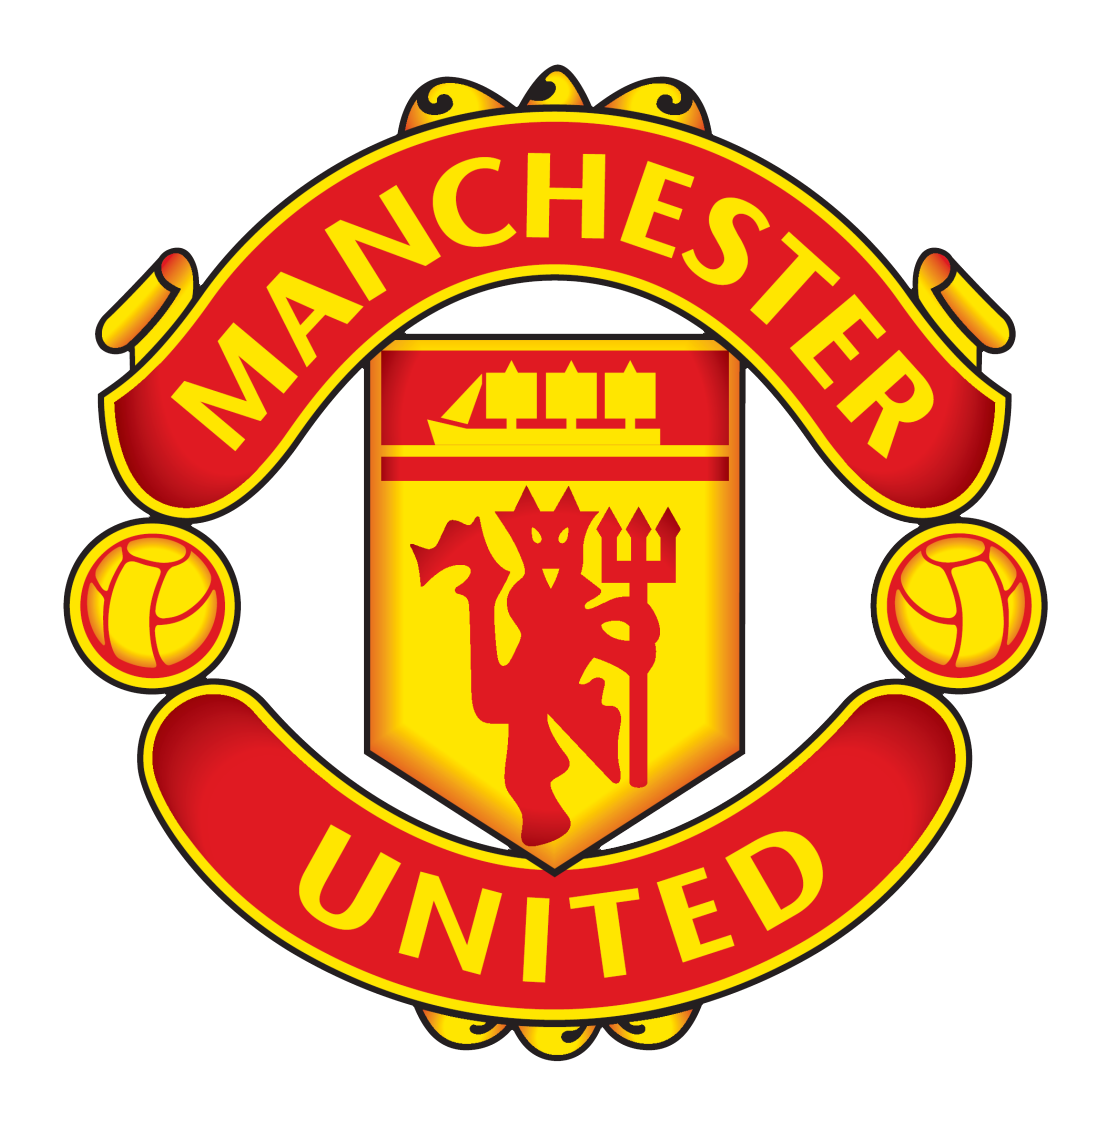 Manchester United Football Club Wallpapers - 2011 | PixelPinch